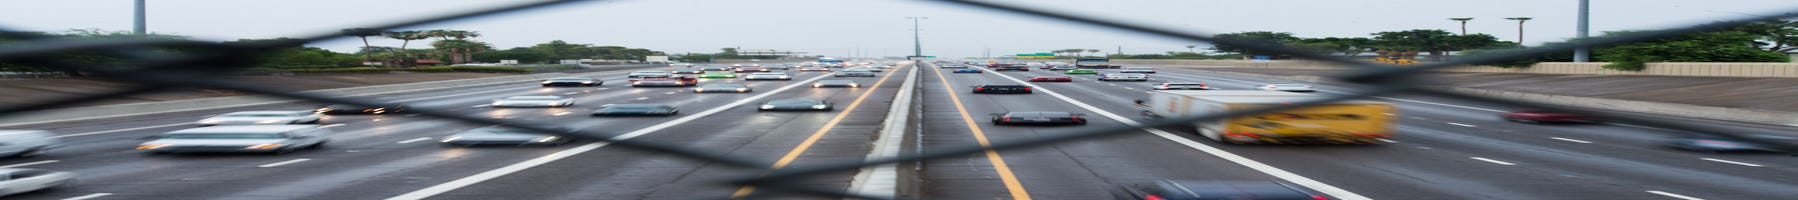 Arizona, national driving deaths on rise after sharp drops in 2014